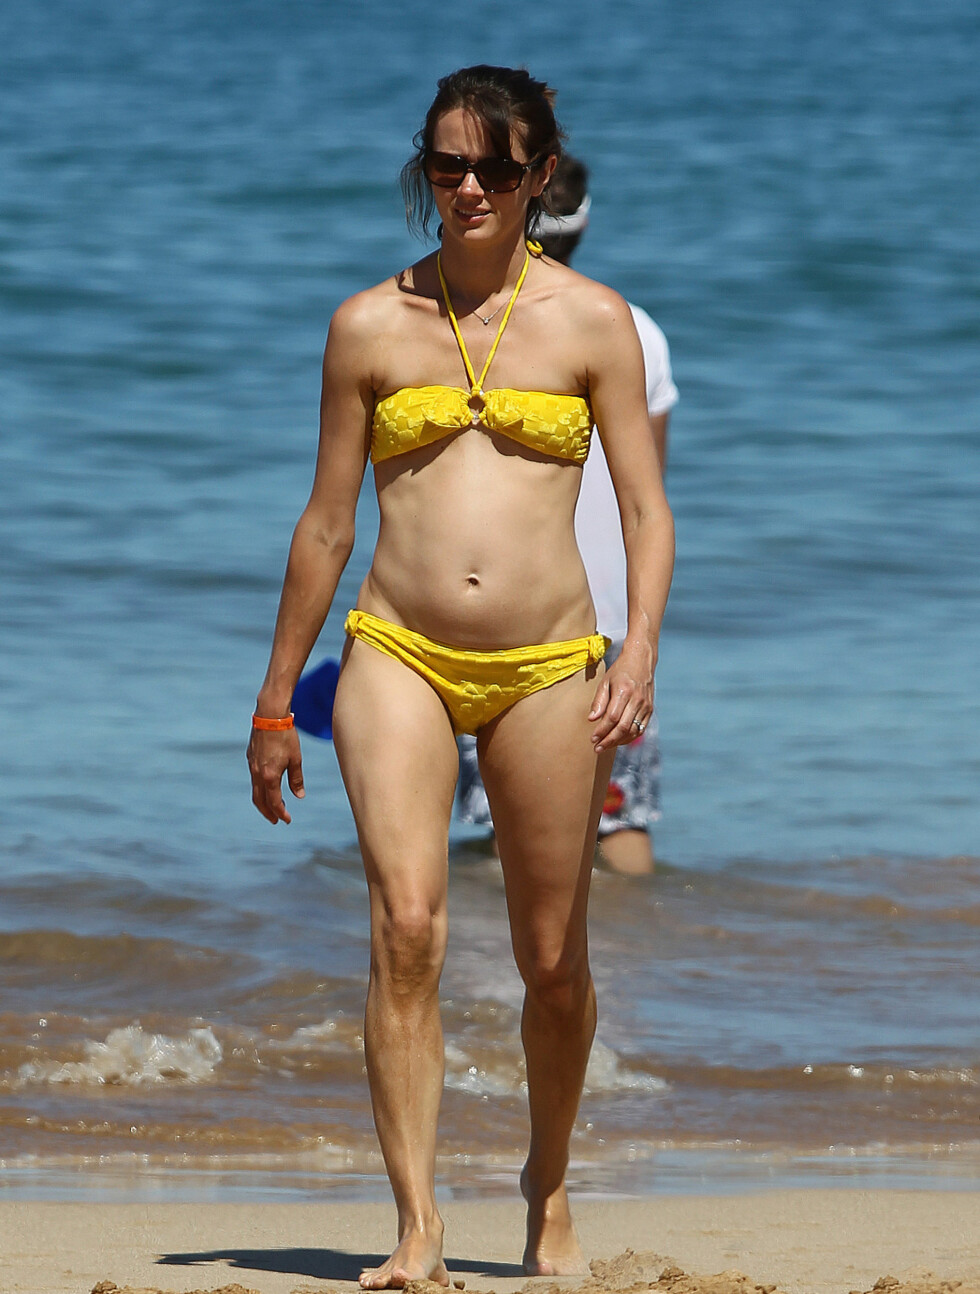 GULT ER KULT: Acker hadde på seg en gul bikini. Foto: All Over Press